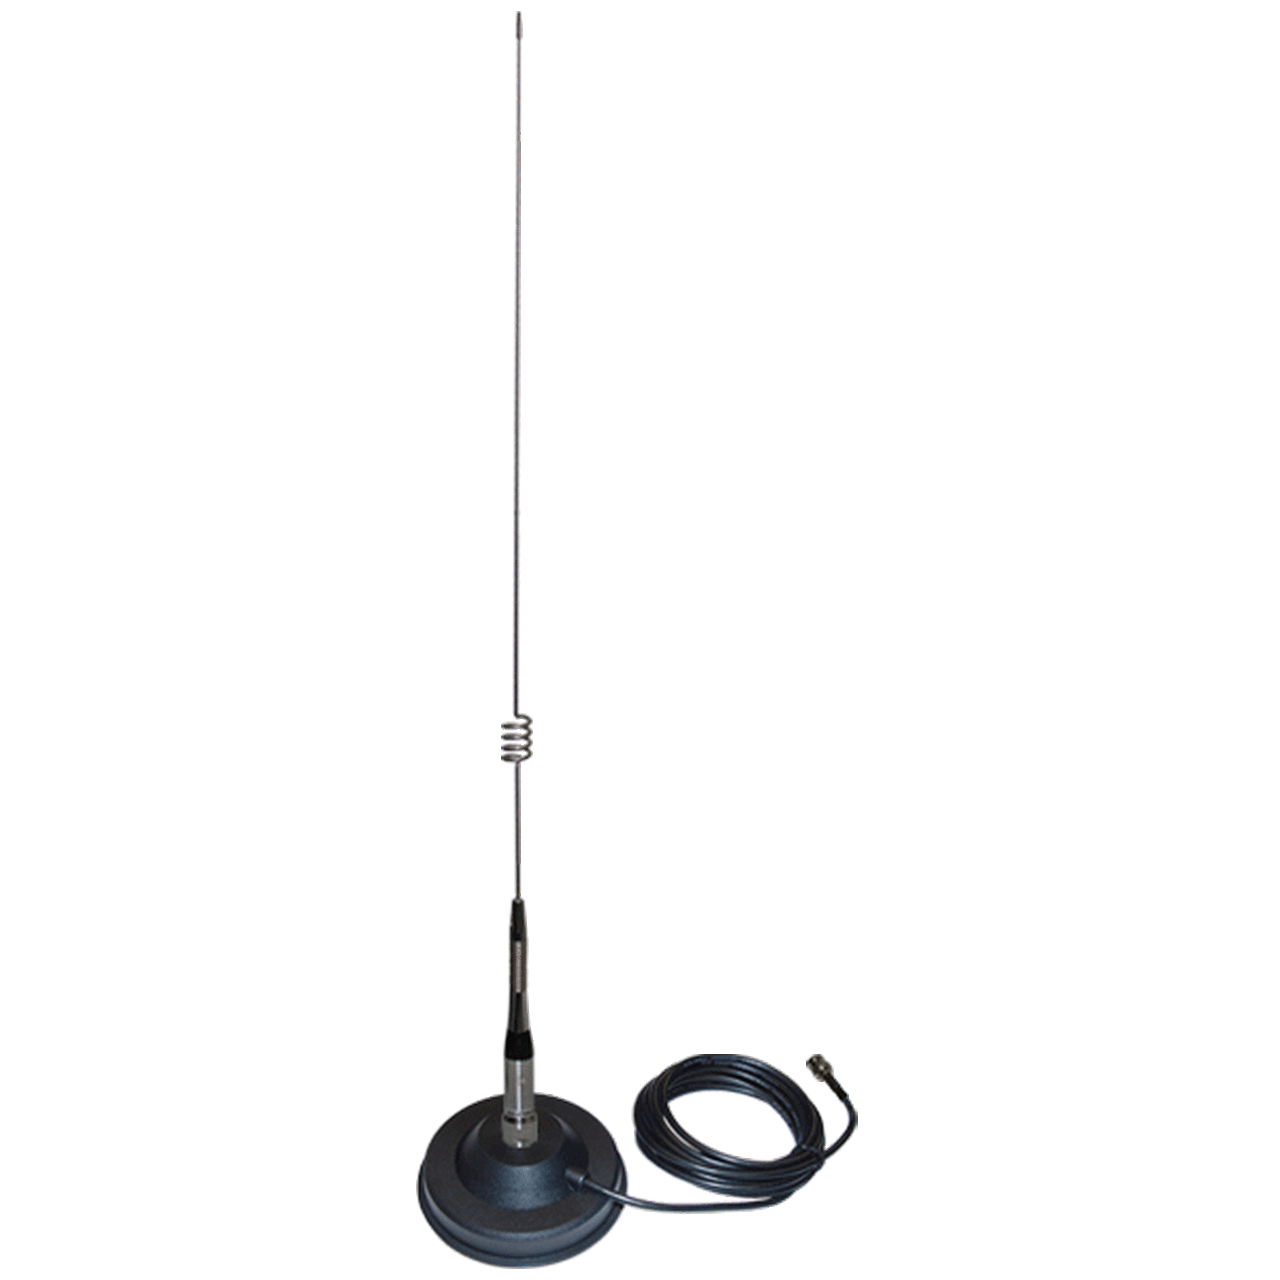 Magnetic Mount Antenna with Cable for Digital Mobile VHF Radio